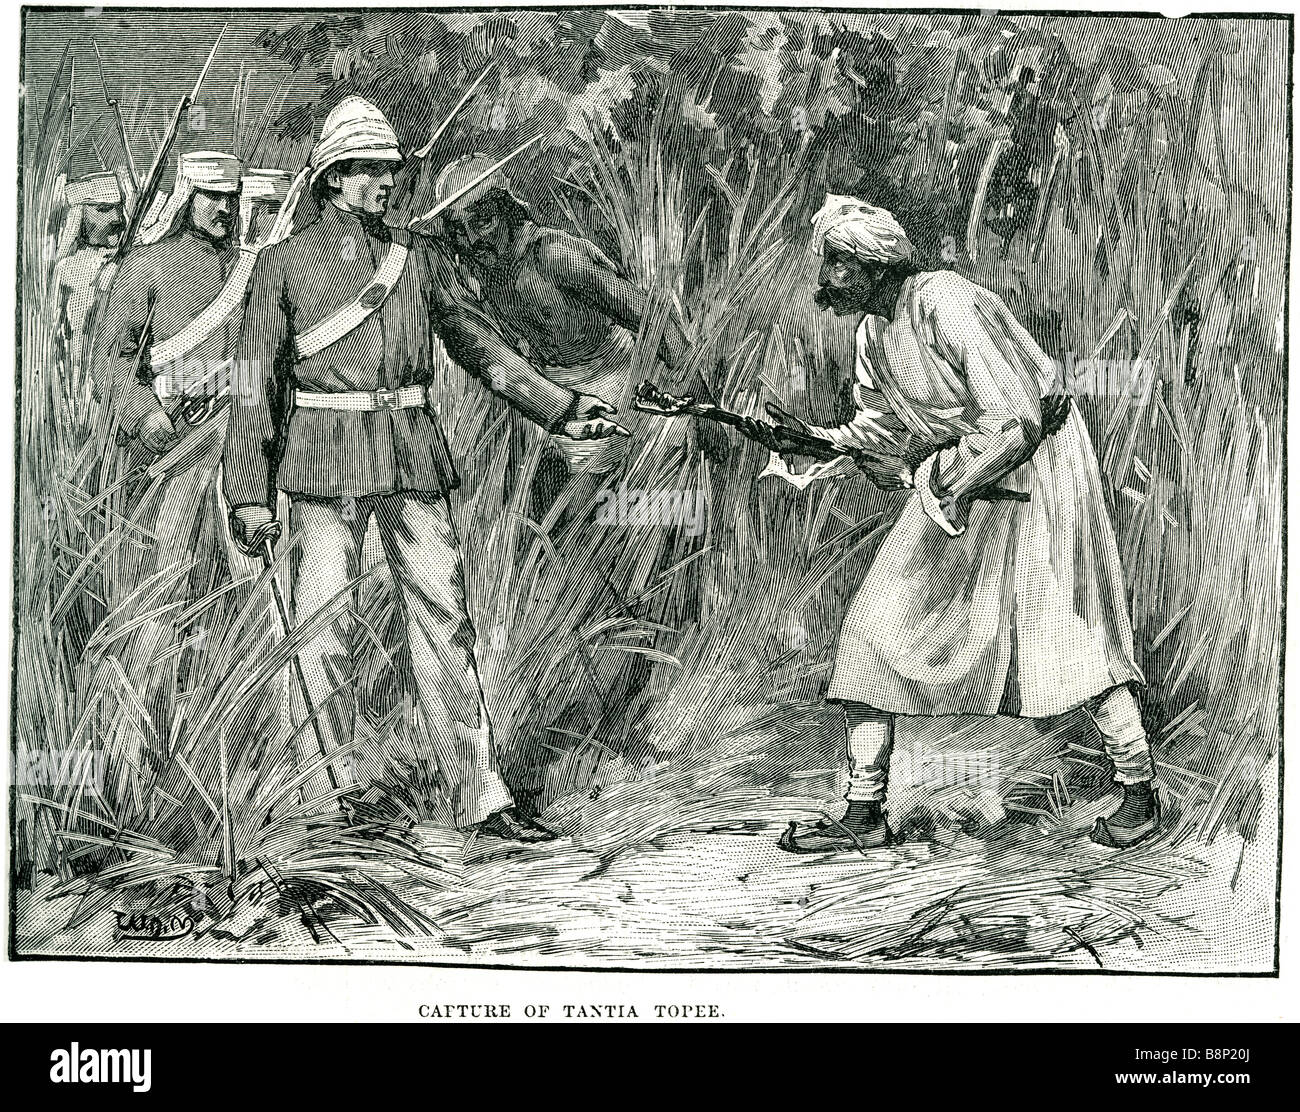 capture tantia topee Ram Chandra Pandurang Tope Indian leader Indian Rebellion 1857 - Stock Image